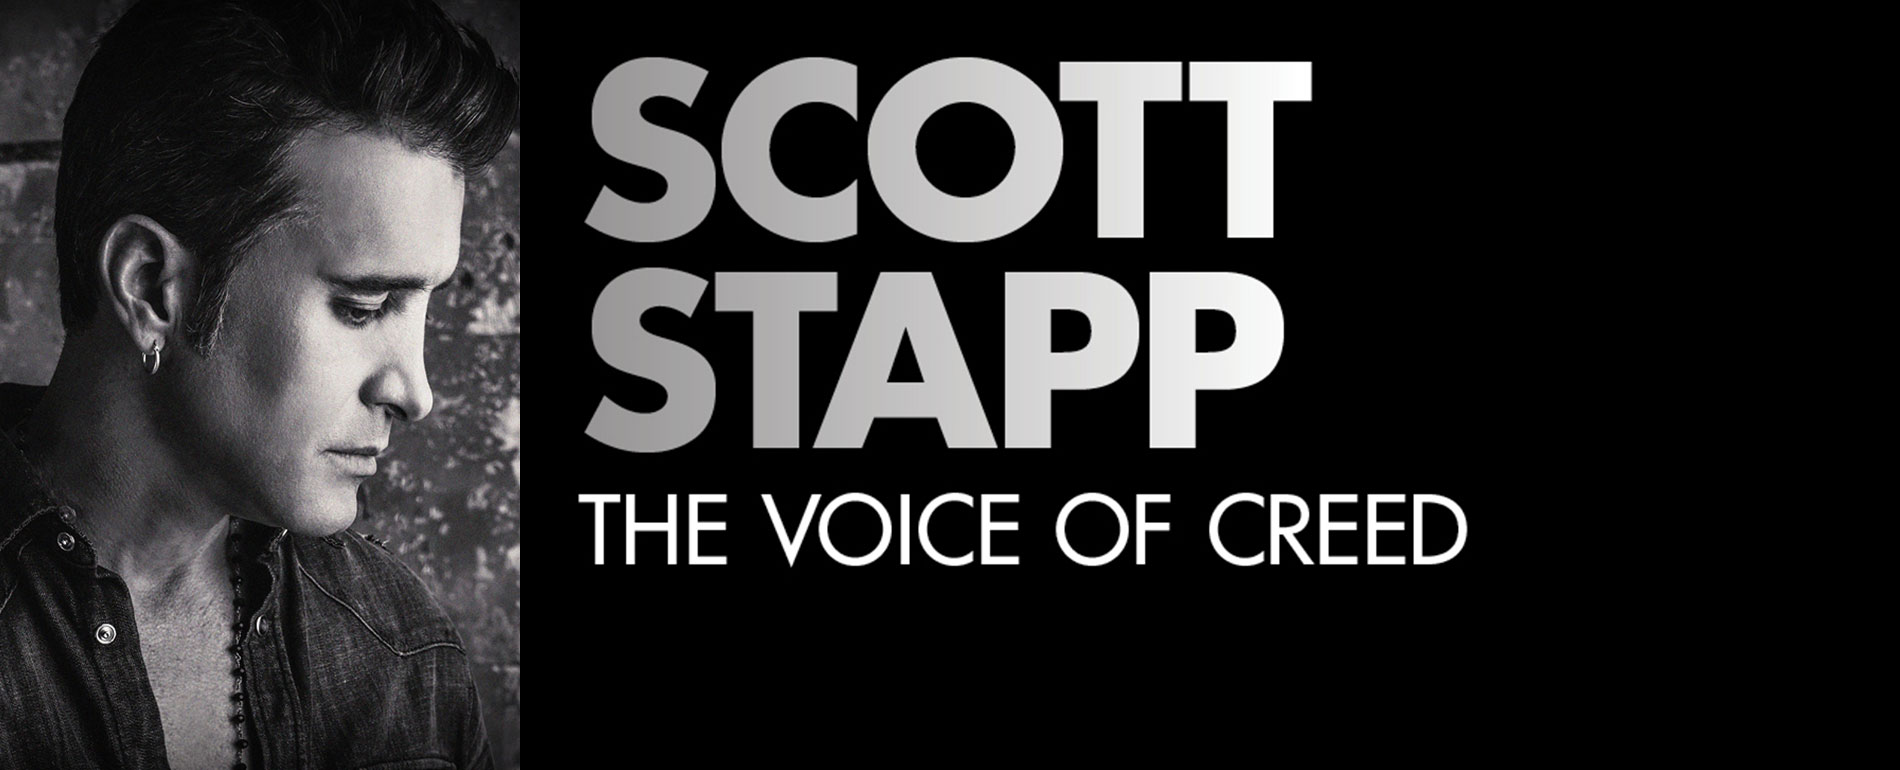 Summer Stage Concert - Scott Stapp - voice of creed